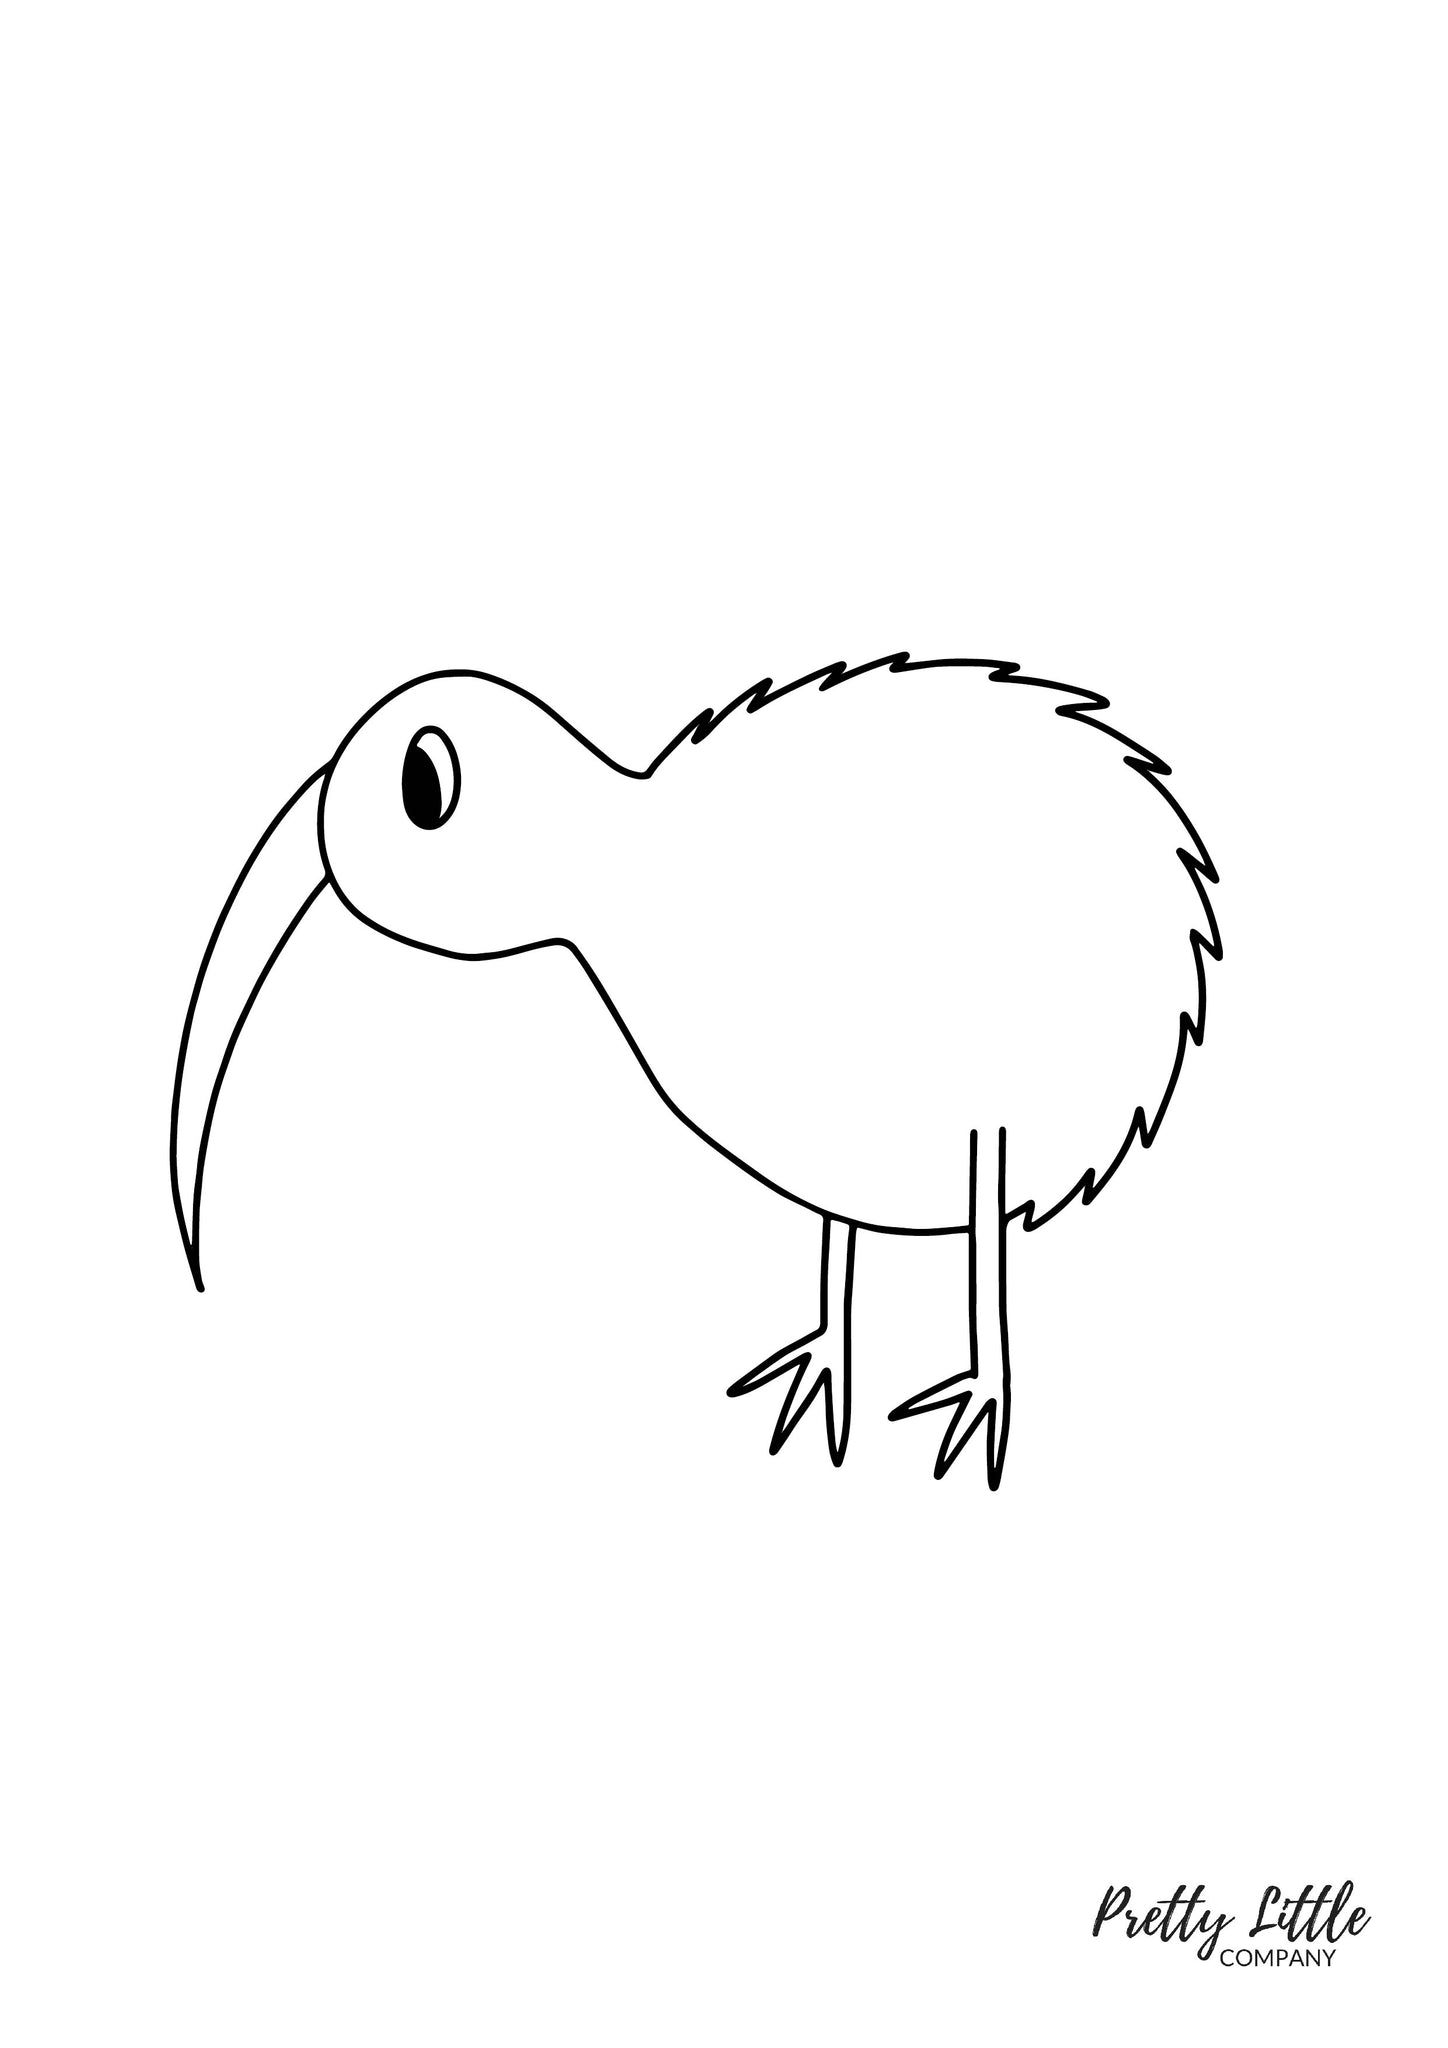 Kiwi Colouring Page - Free Download